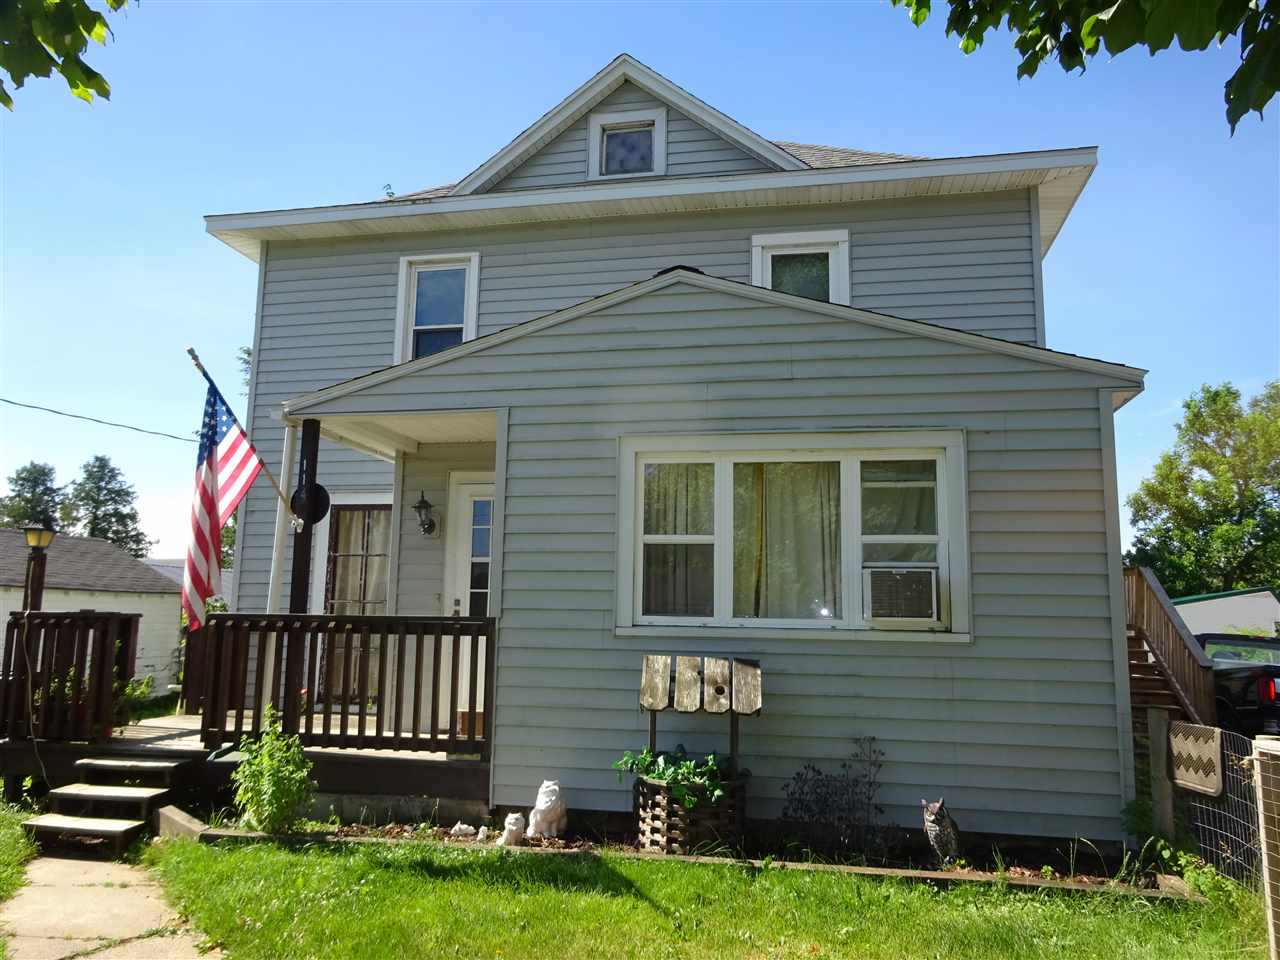 114 Short St, Kendall, WI 54638